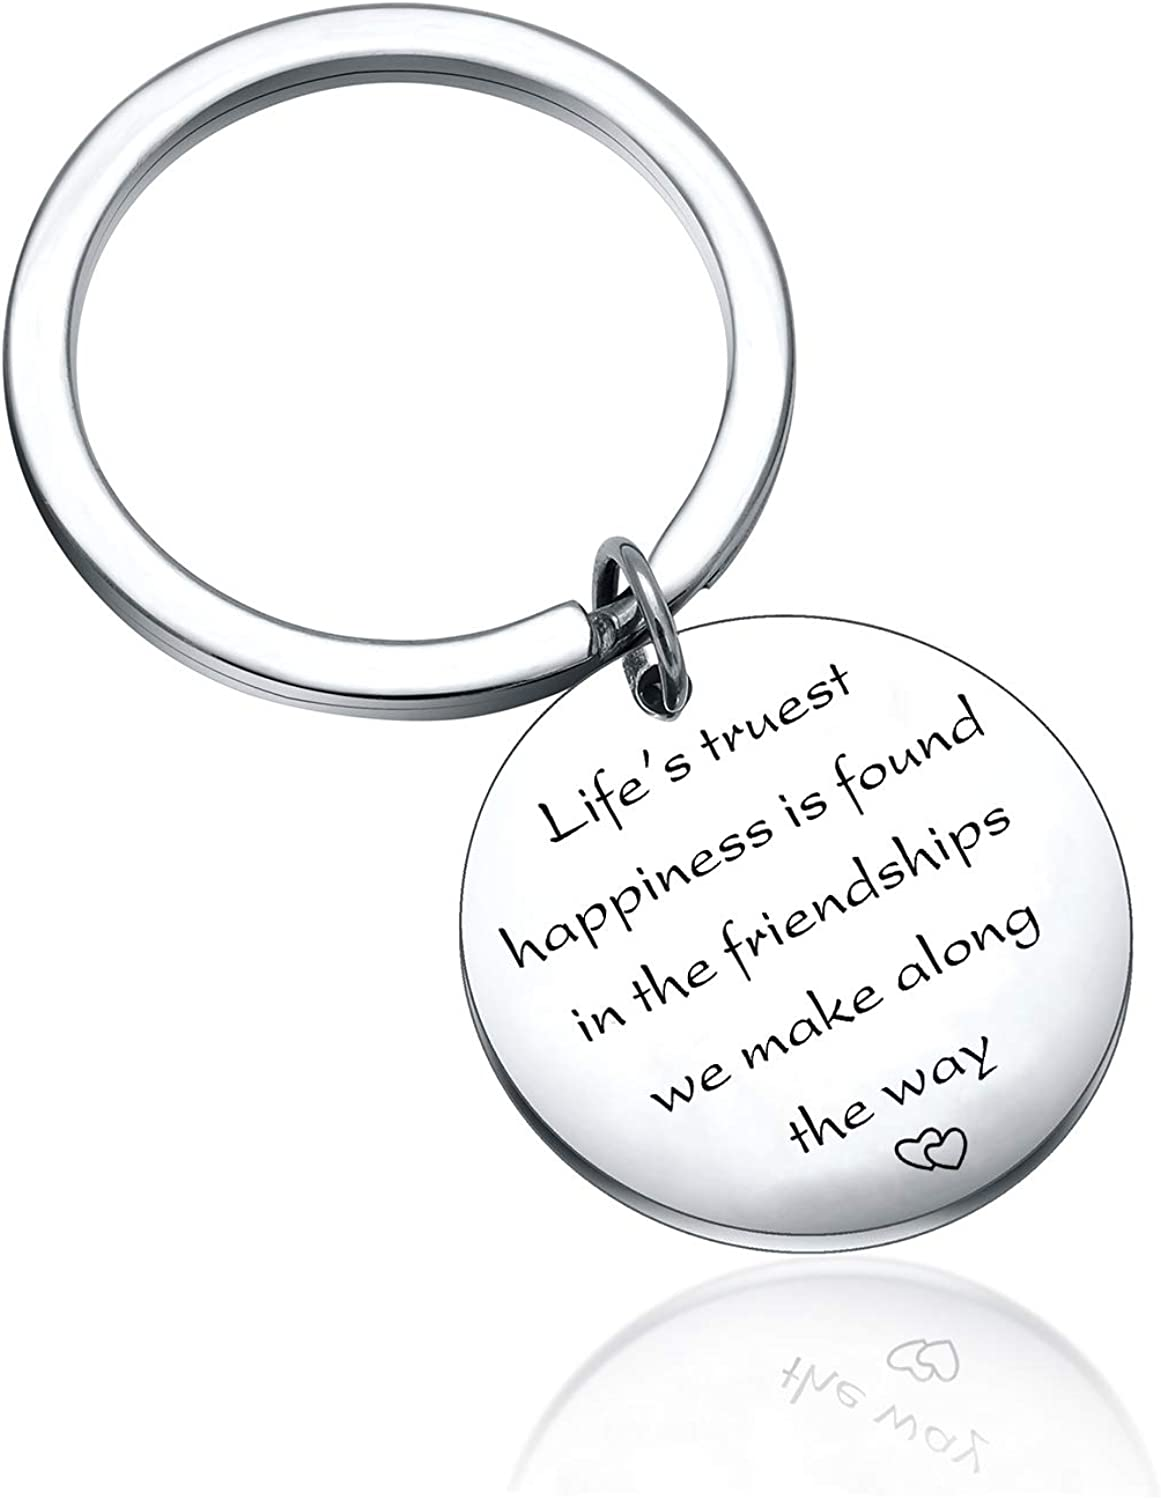 Life's truest happiness is found in the friendships we make along the way Best Friend Keychain friendship gift